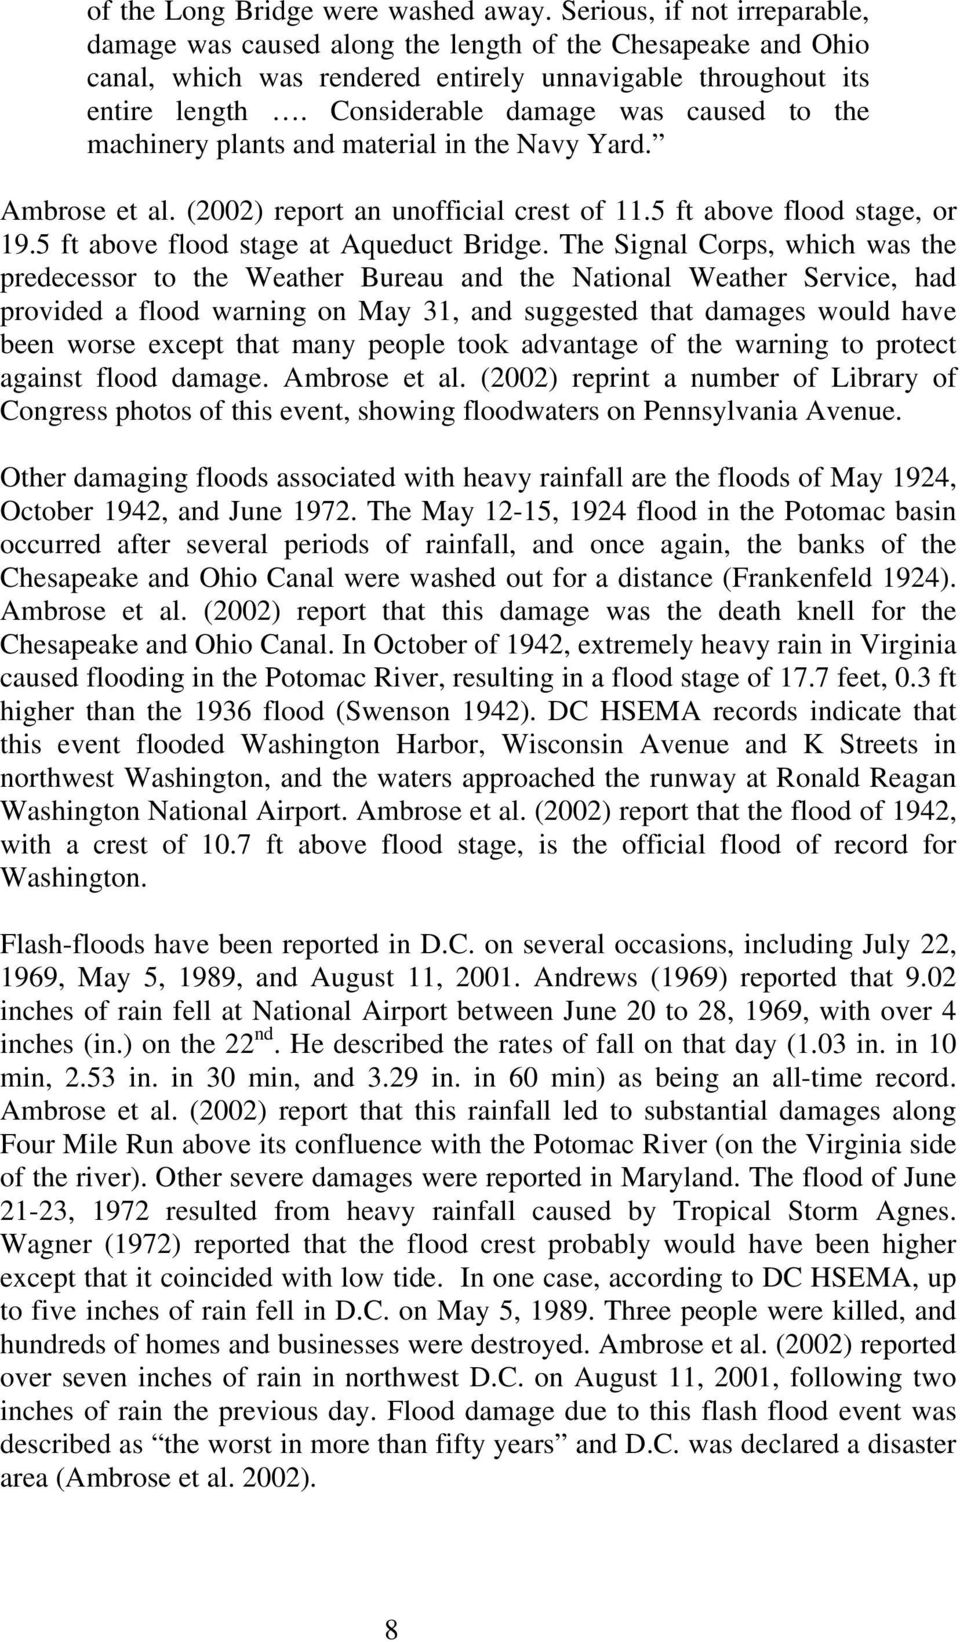 Considerable damage was caused to the machinery plants and material in the Navy Yard. Ambrose et al. (2002) report an unofficial crest of 11.5 ft above flood stage, or 19.